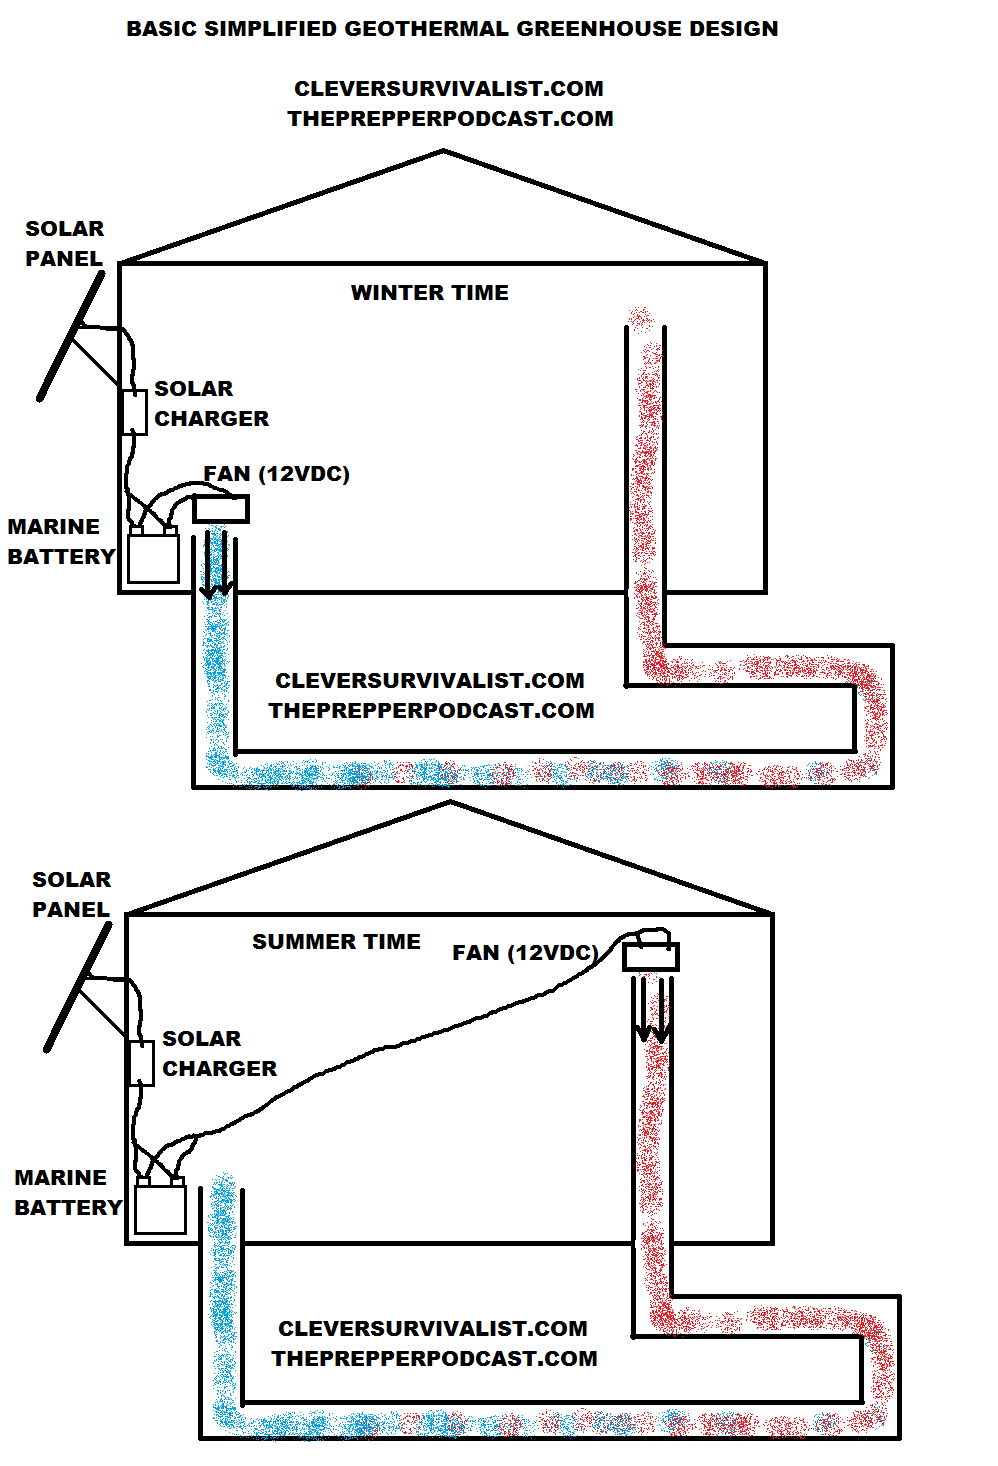 medium resolution of how does forced air geothermal energy work for year round plants design